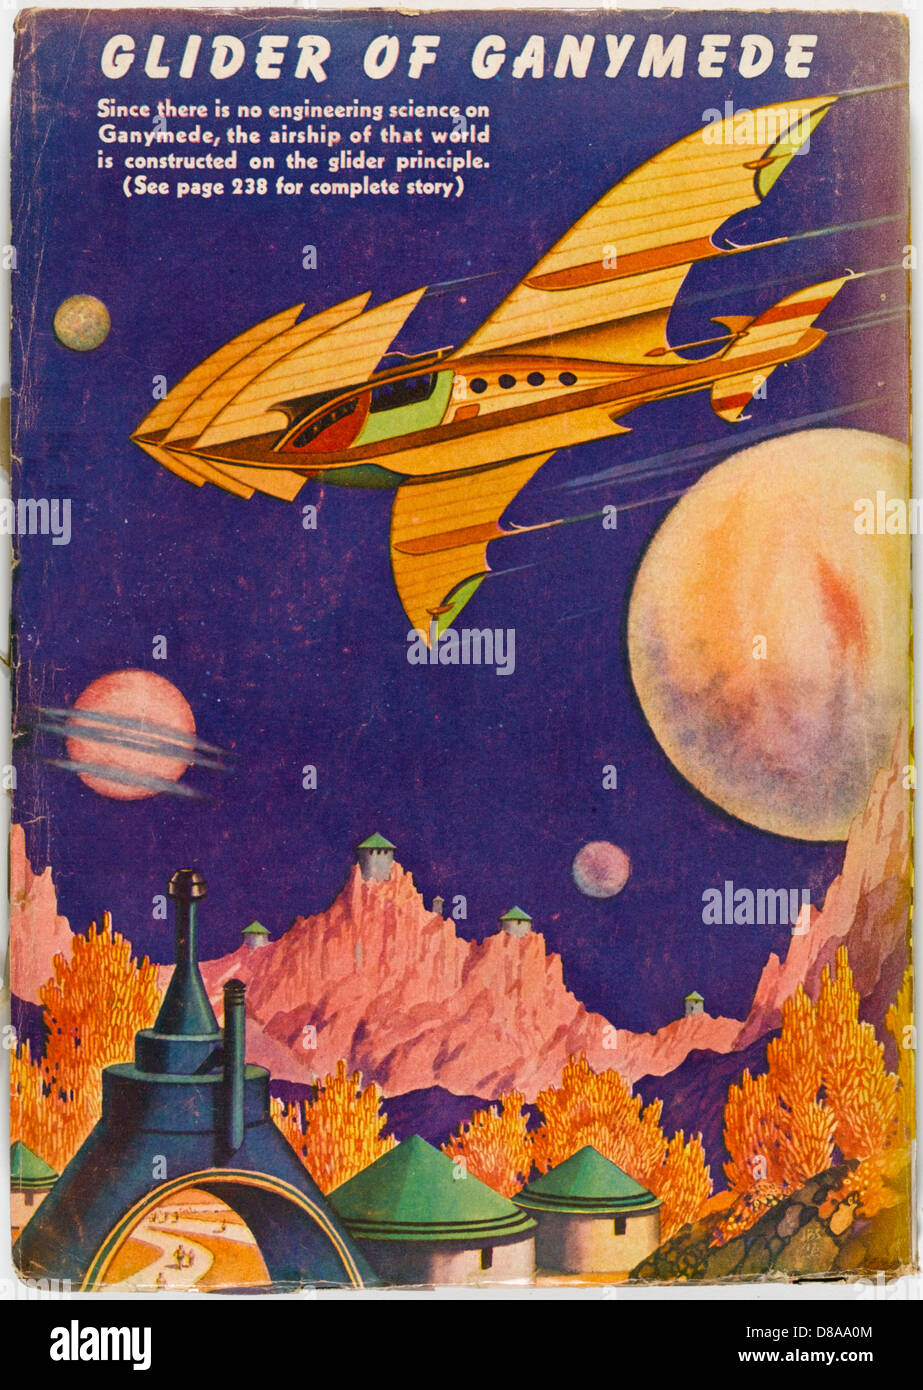 Glider Of Ganymede - Stock Image